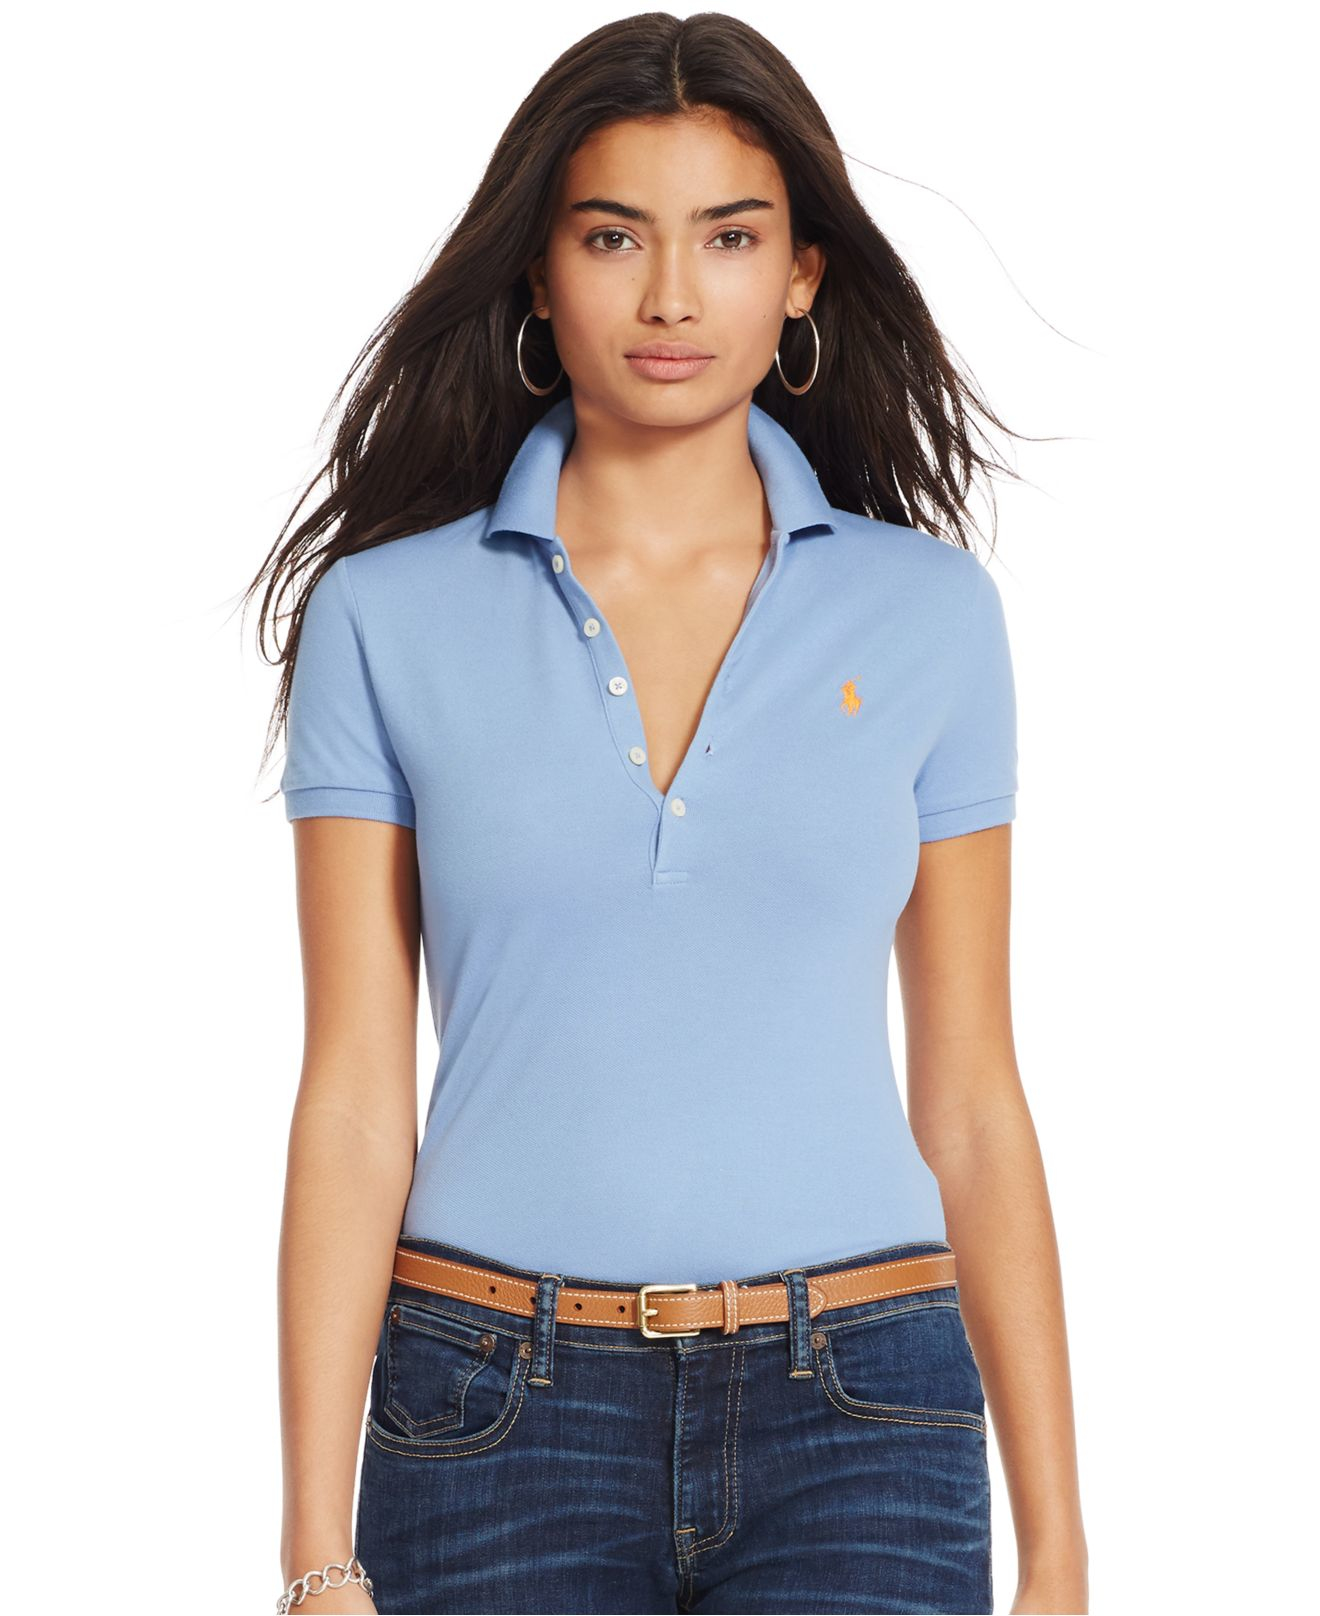 Lyst - Polo Ralph Lauren Skinny Stretch Polo Shirt in Blue 4c5abadbc